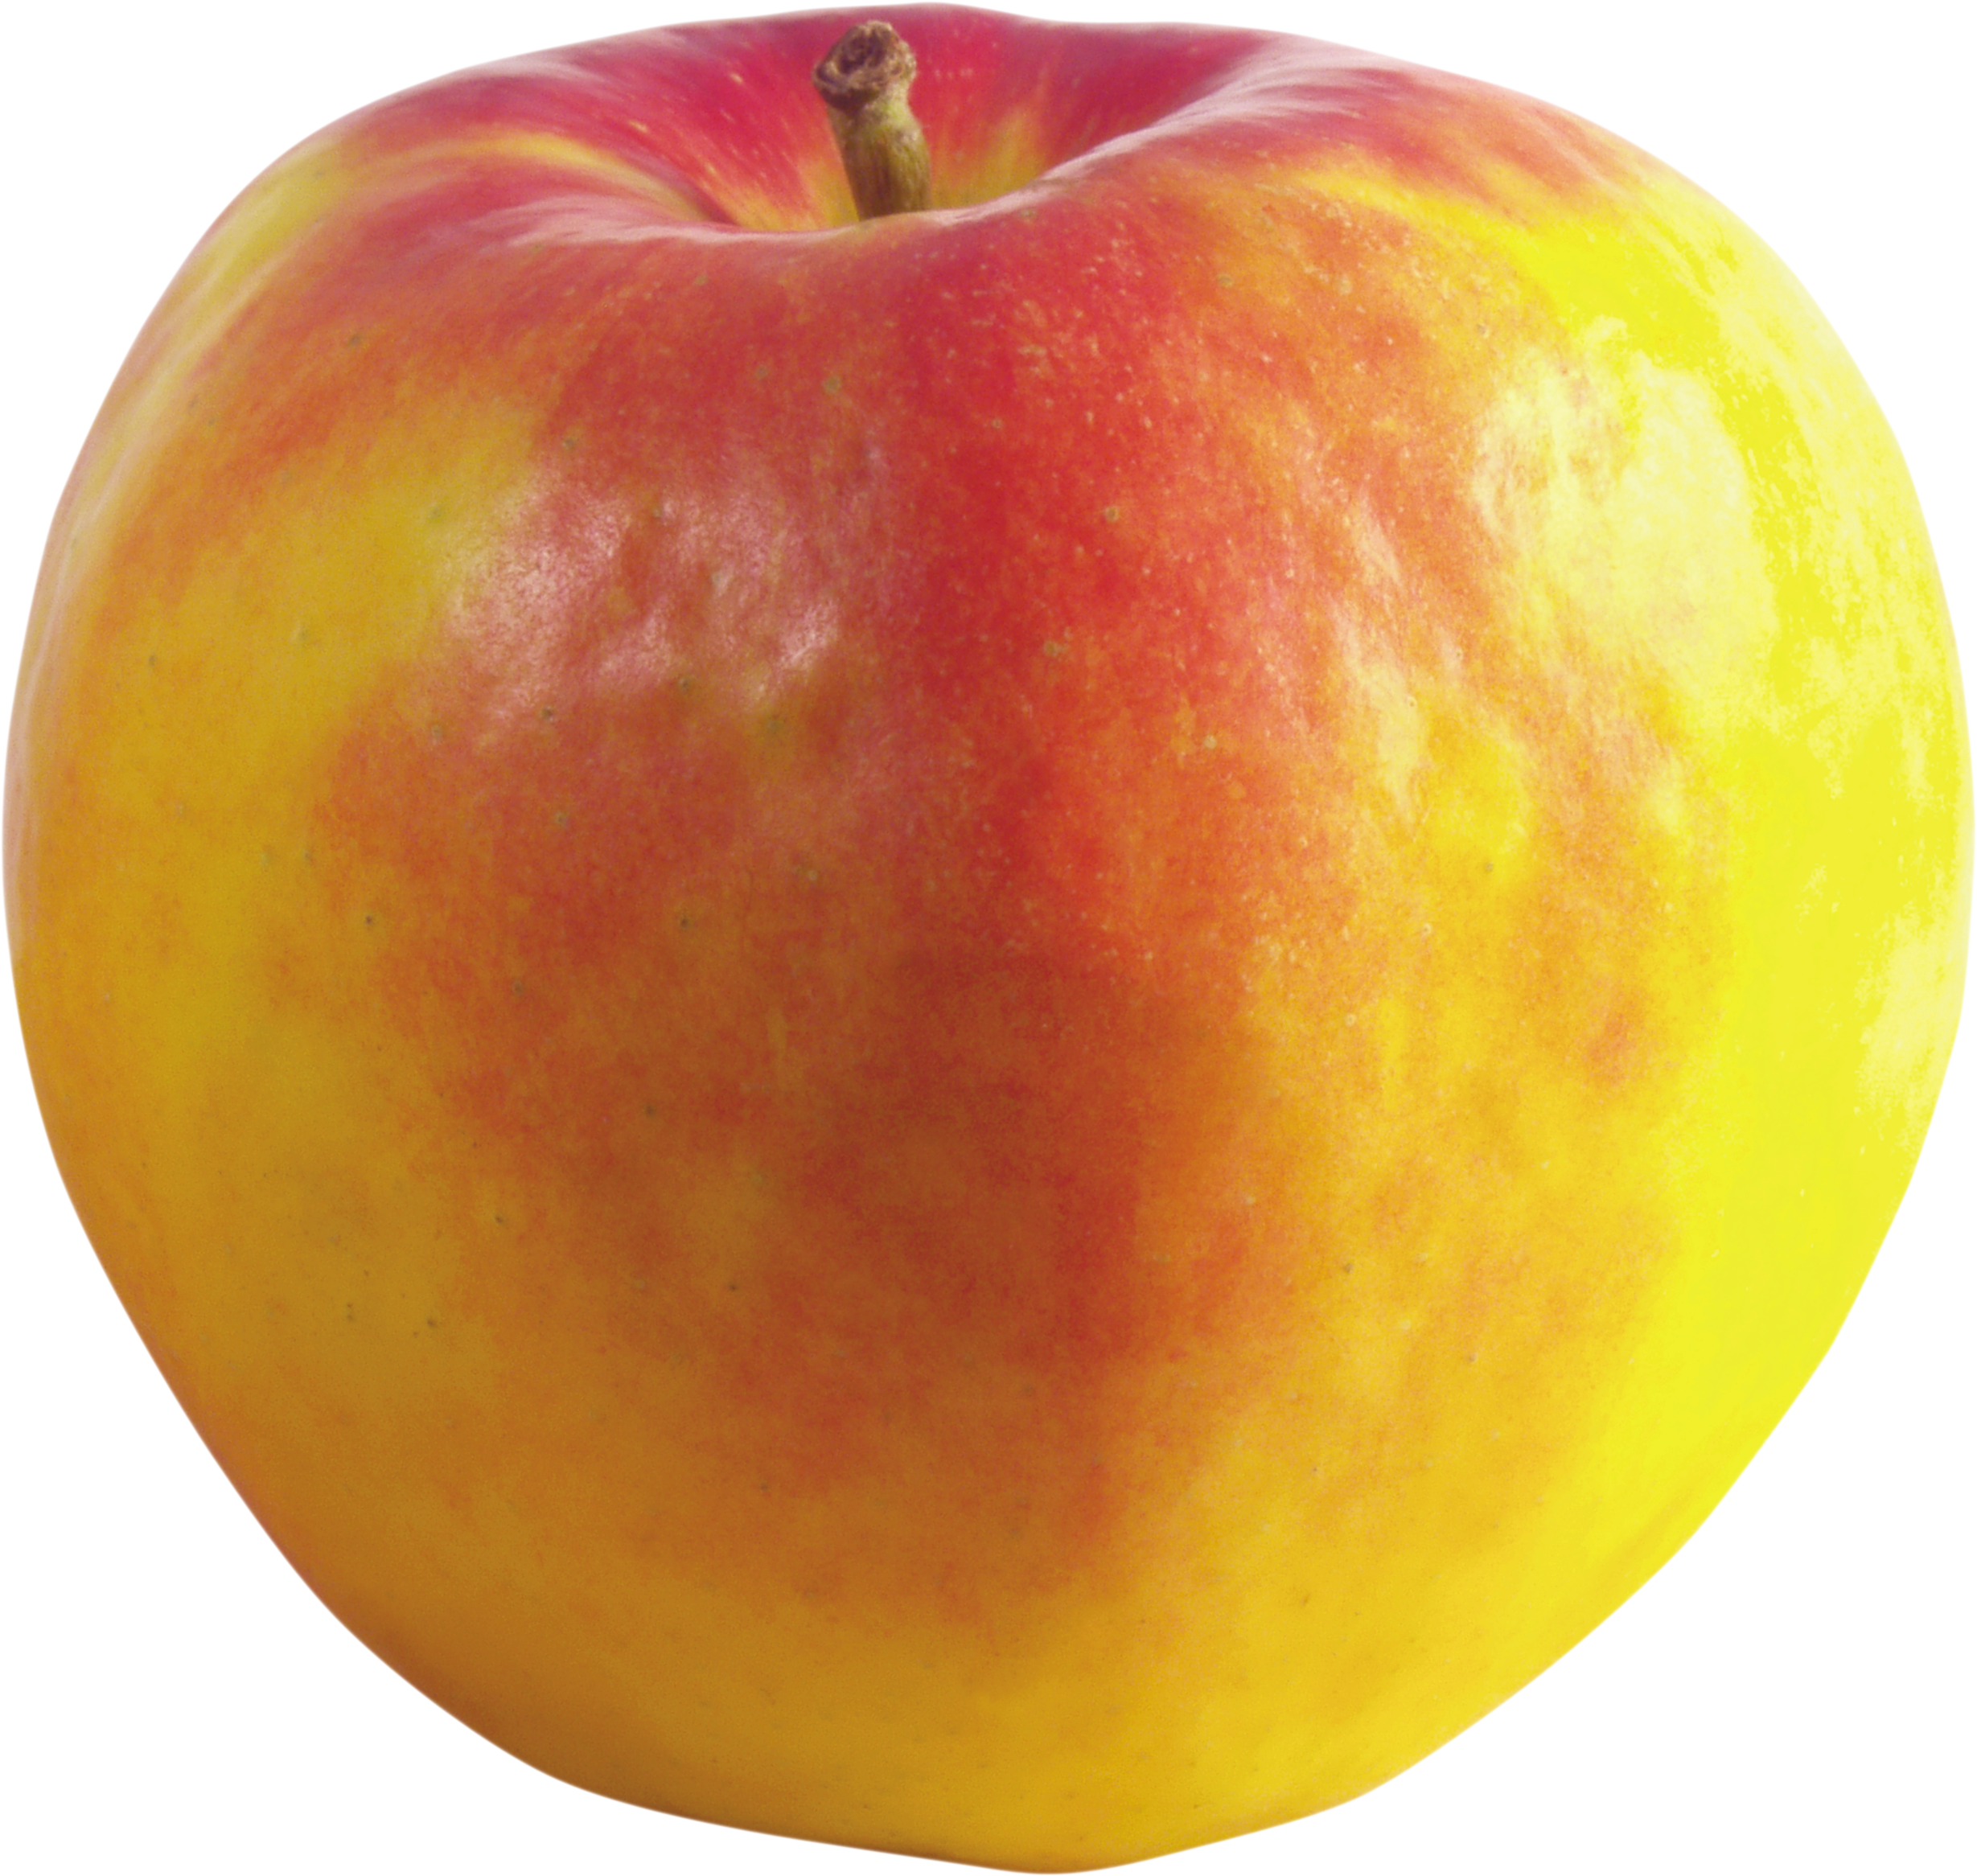 Red and yellow Apple PNG Image